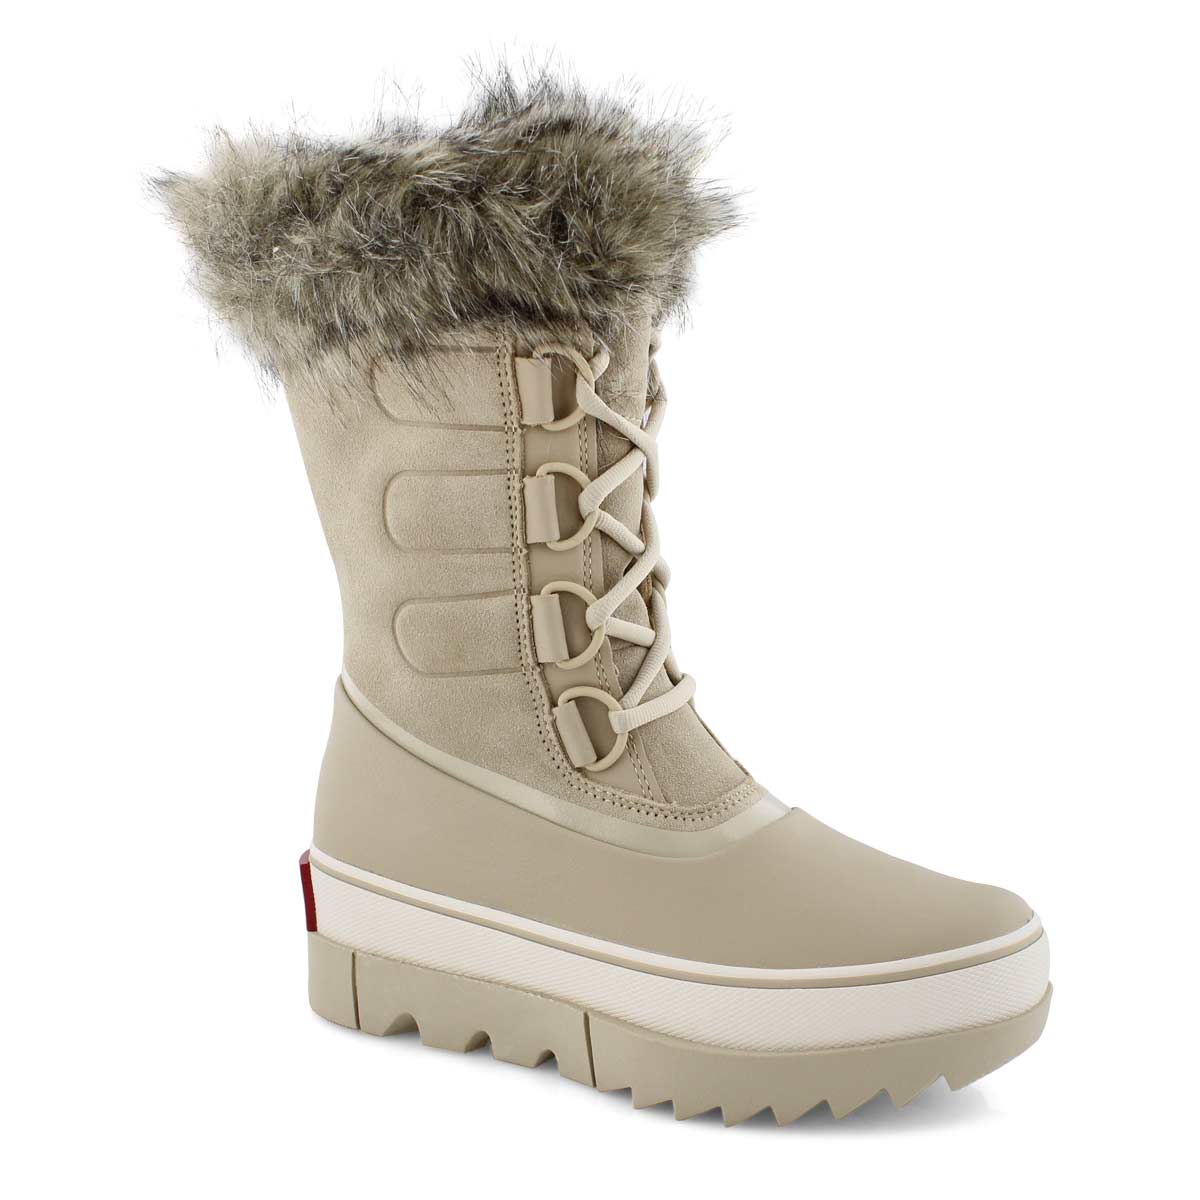 Lds Joan of Arctic Next fssl winter boot